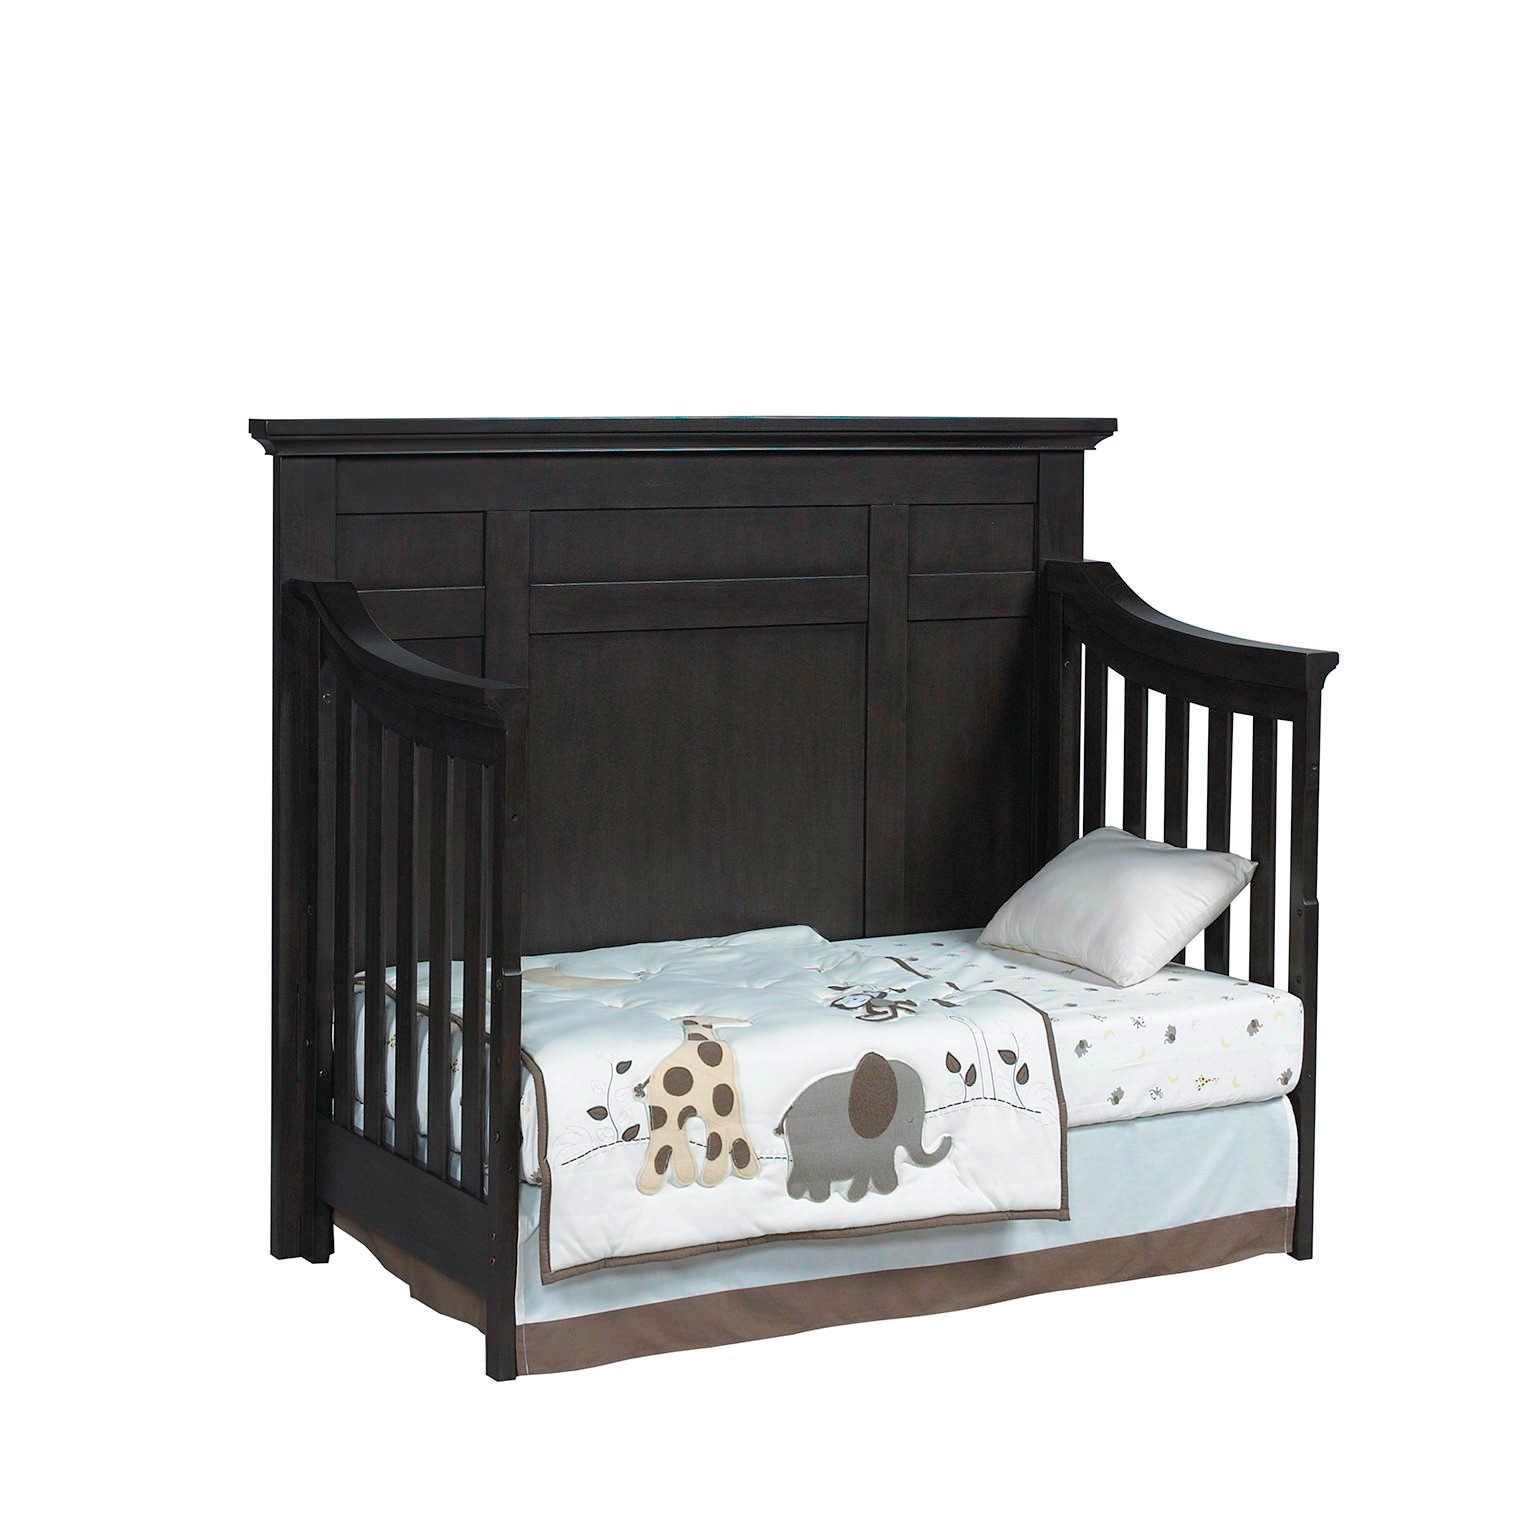 4 In 1 Convertible Crib Dallas Slate Oxford Baby Kids